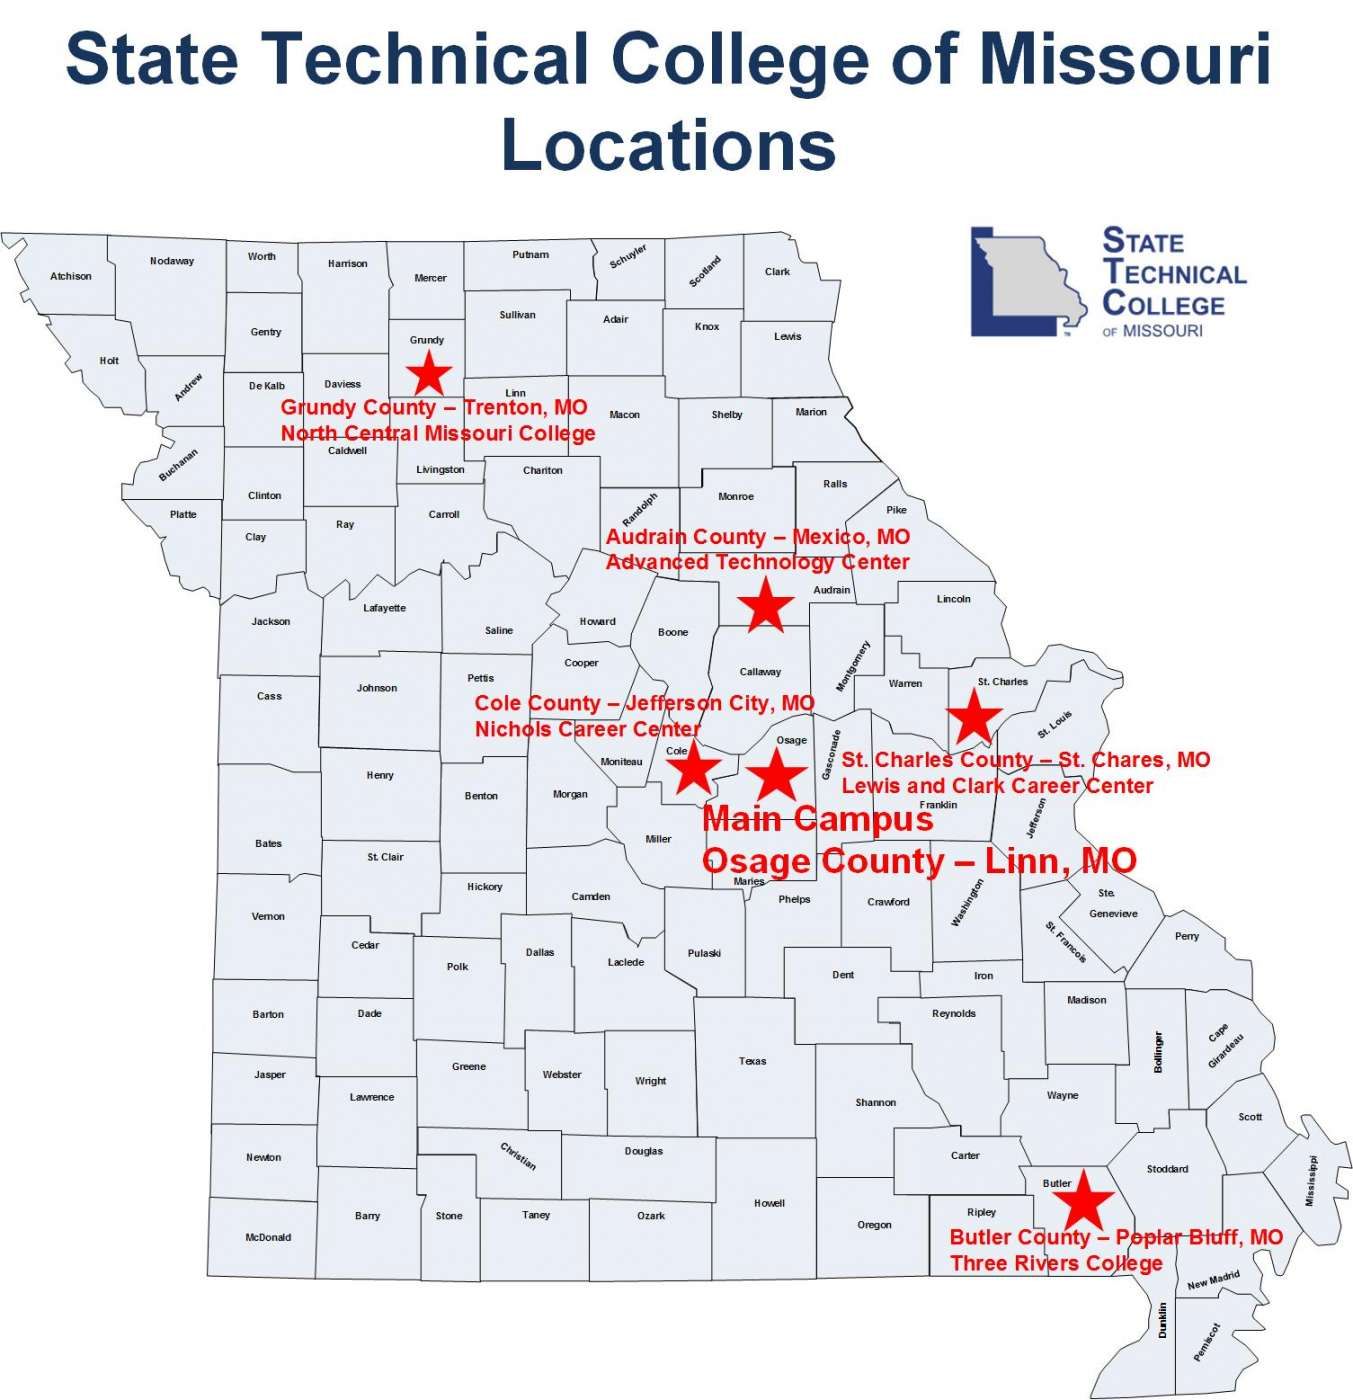 Map Directions State Technical College Of Missouri - Missourimap